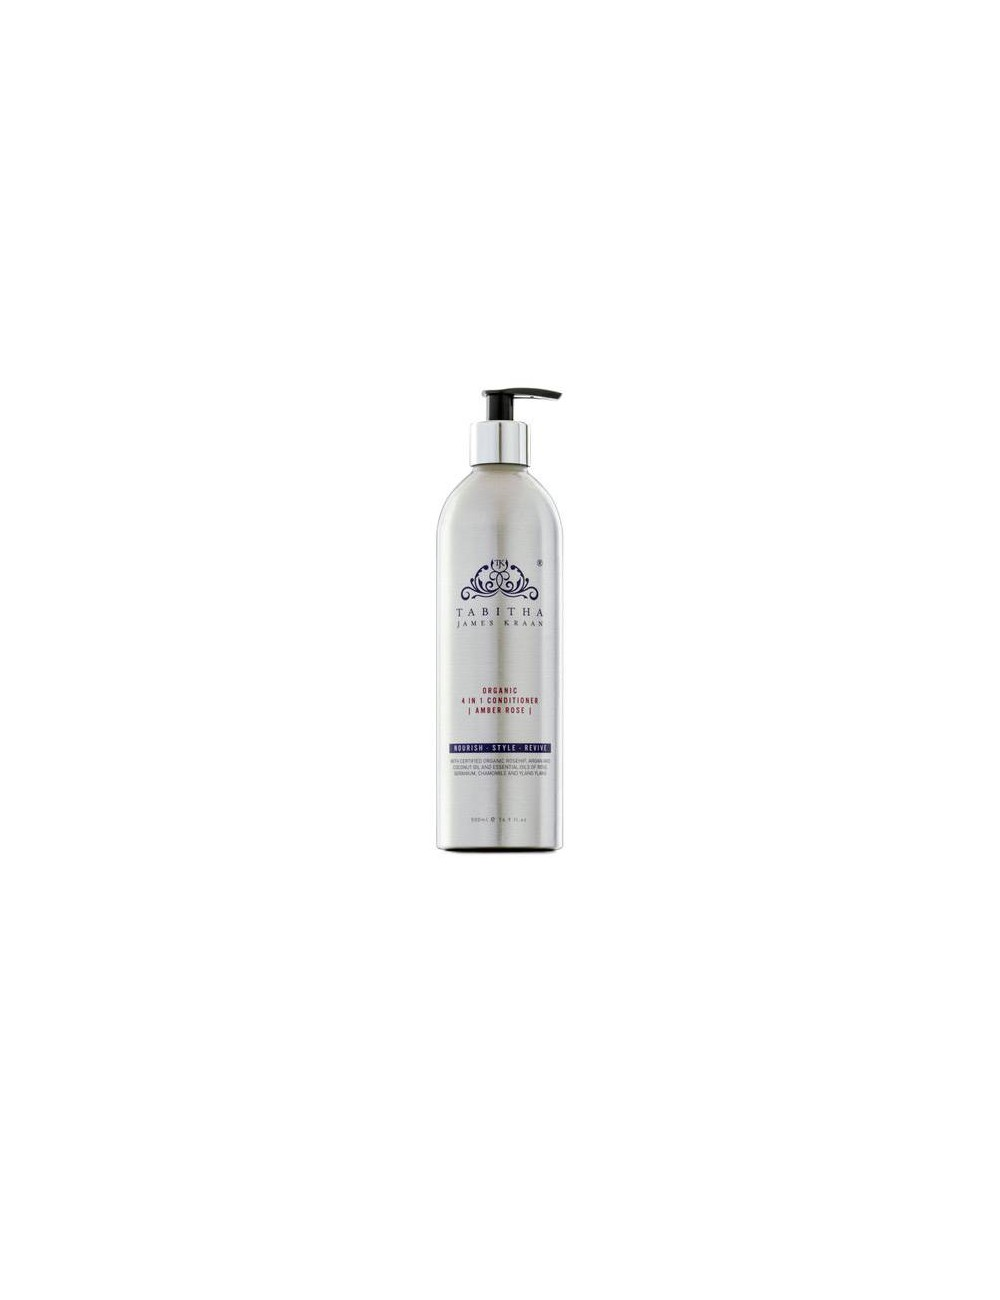 TJK Large Size Amber Rose 4-in-1 Conditioner 500ml